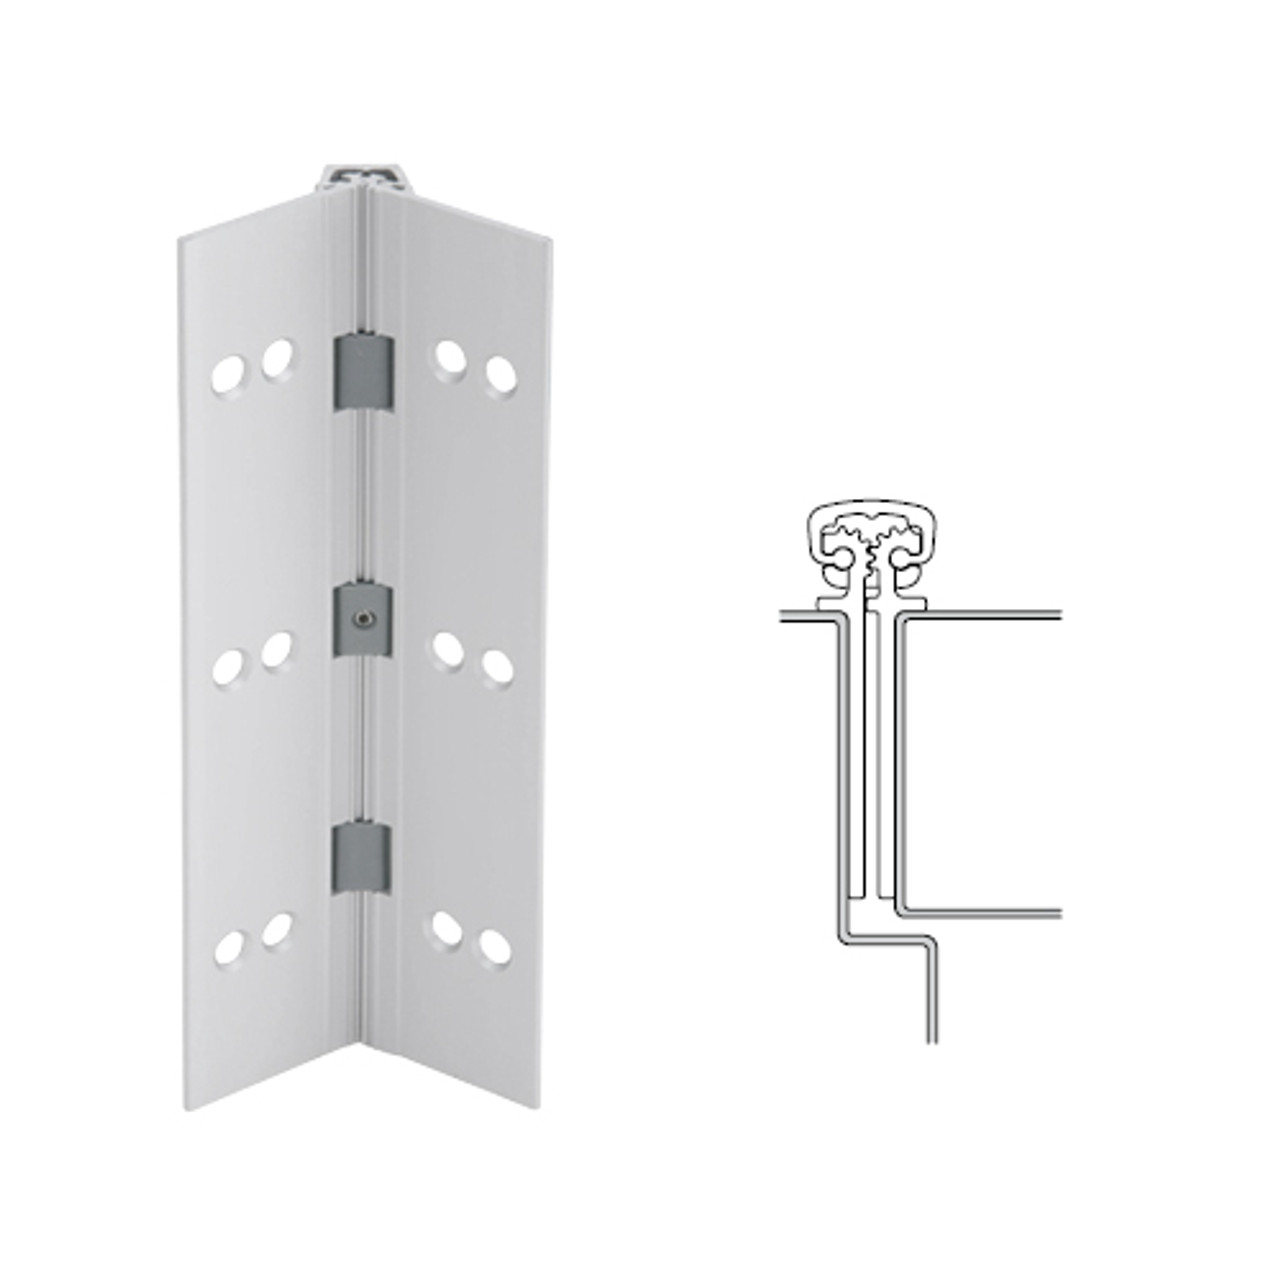 027XY-US28-85-HT IVES Full Mortise Continuous Geared Hinges with Hospital Tip in Satin Aluminum